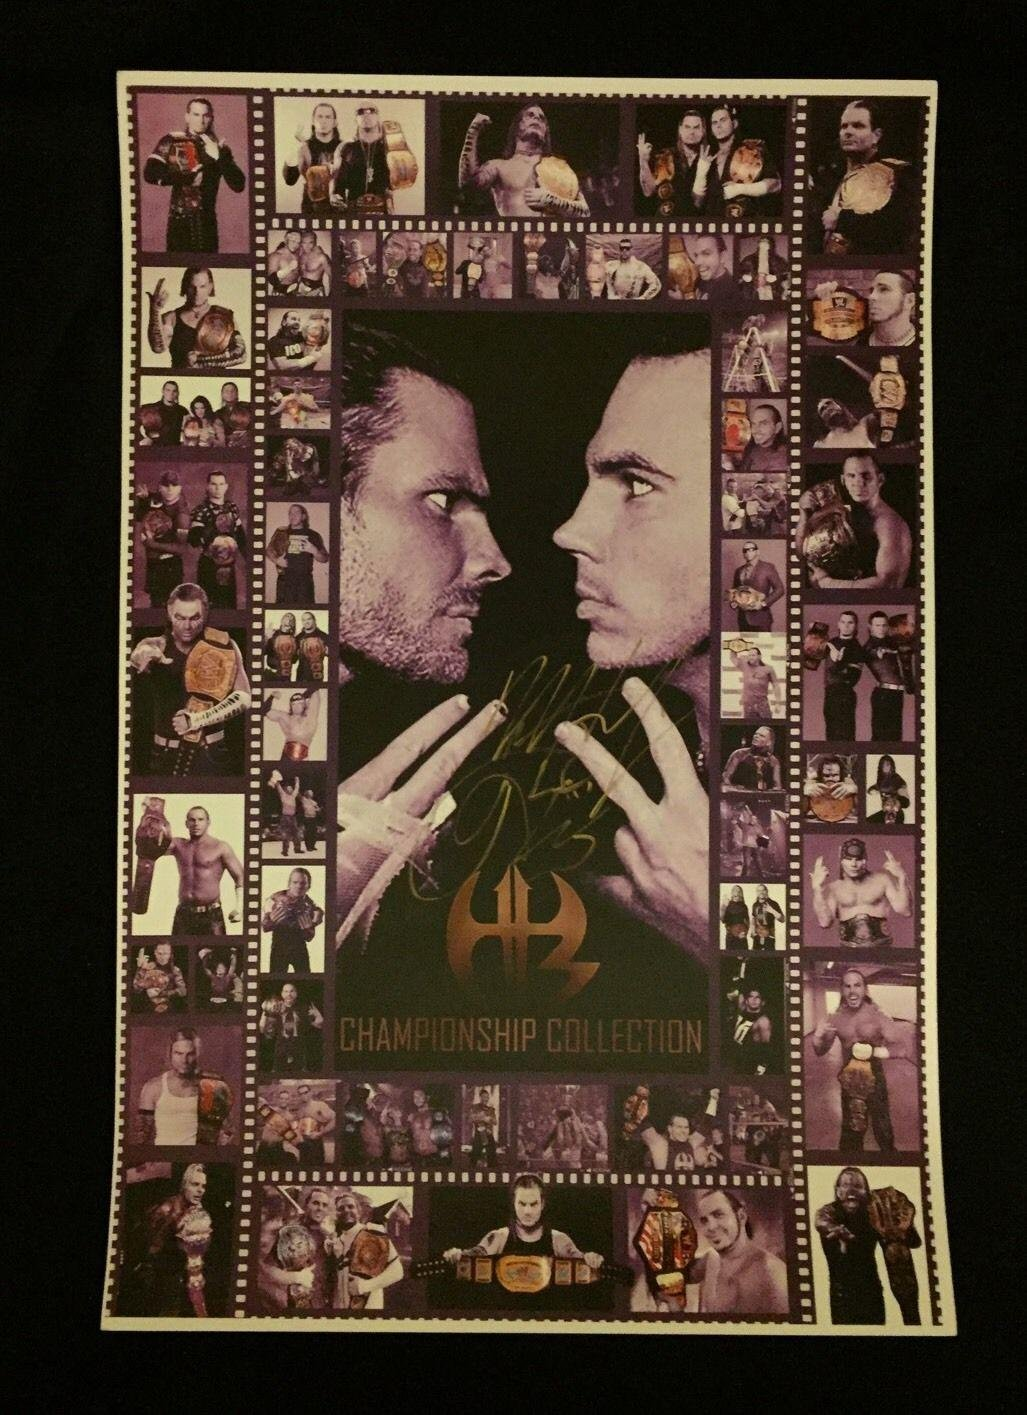 Wwe tna jeff hardy autographed 11x14 photo auto signed autograph - Hardy Boyz Matt Jeff Hardy Wwe Signed Custom 12x18 Photo Autographed Wrestling Photos At Amazon S Sports Collectibles Store